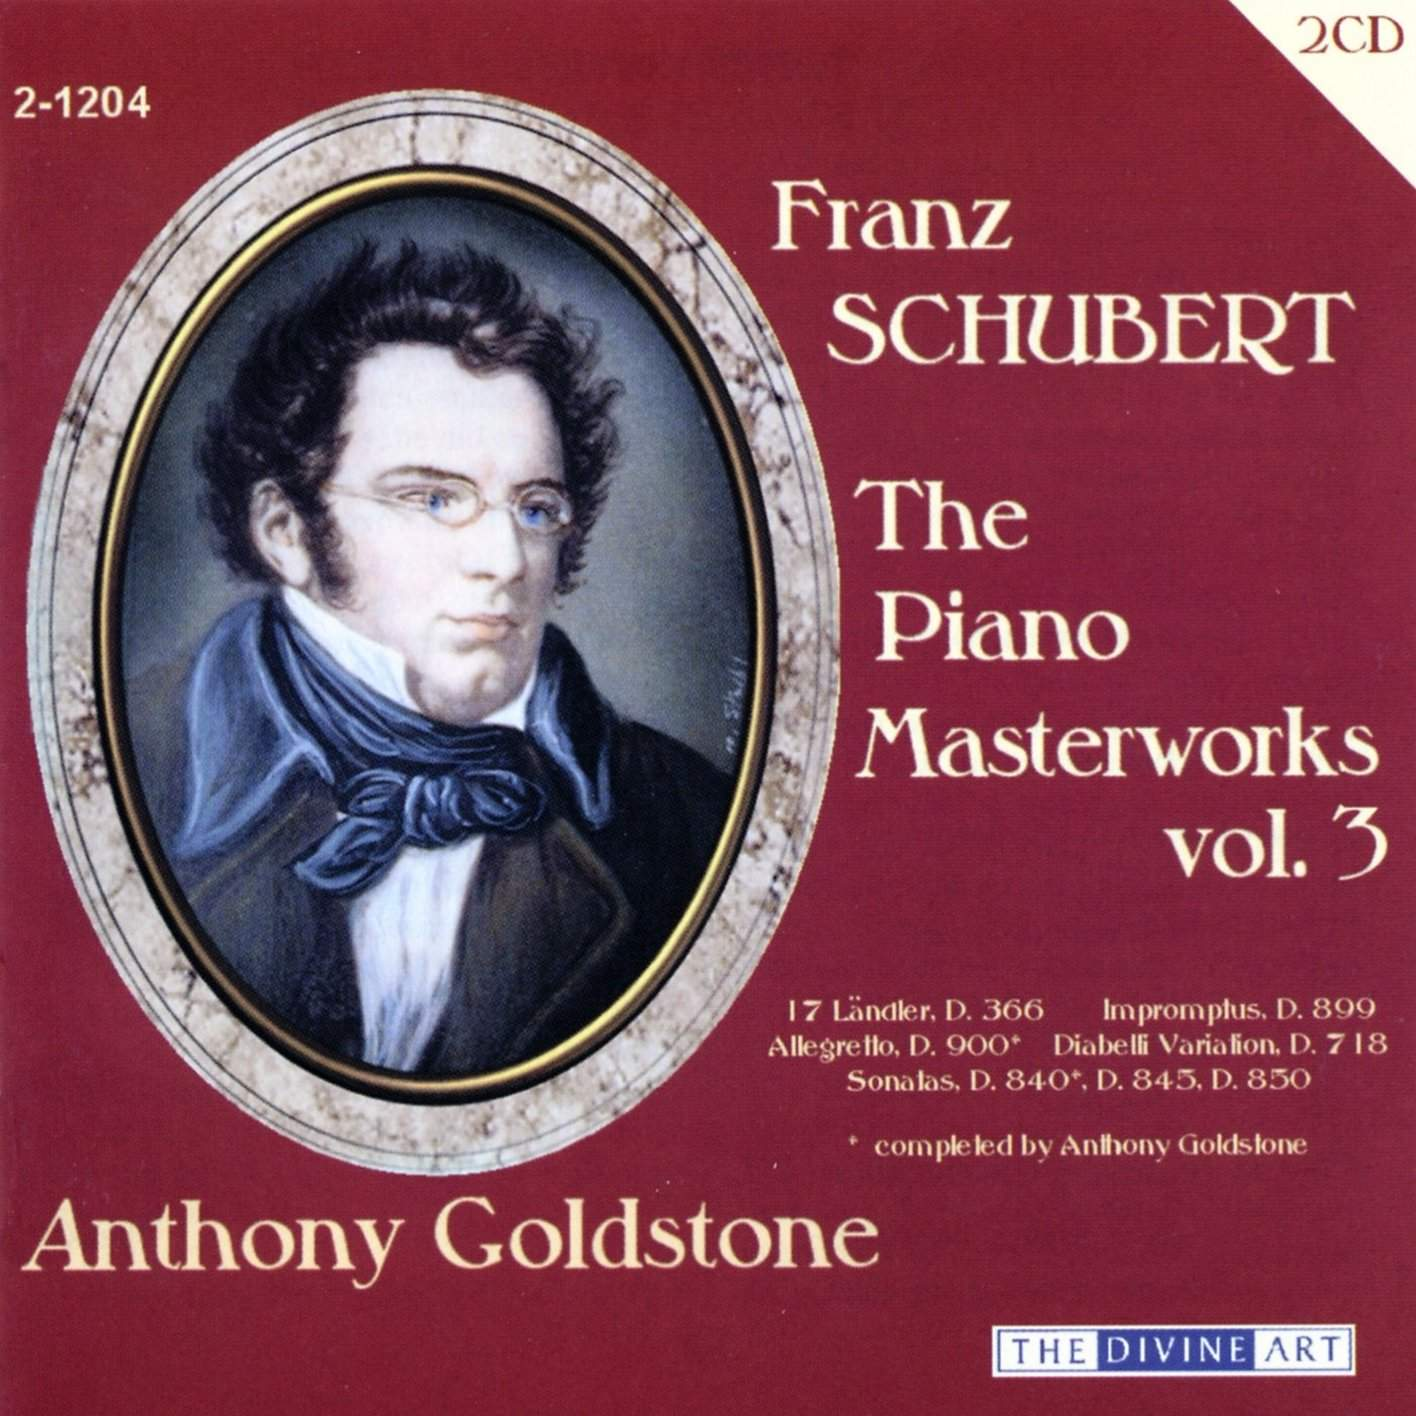 The Schubert Piano Masterworks, vol.3